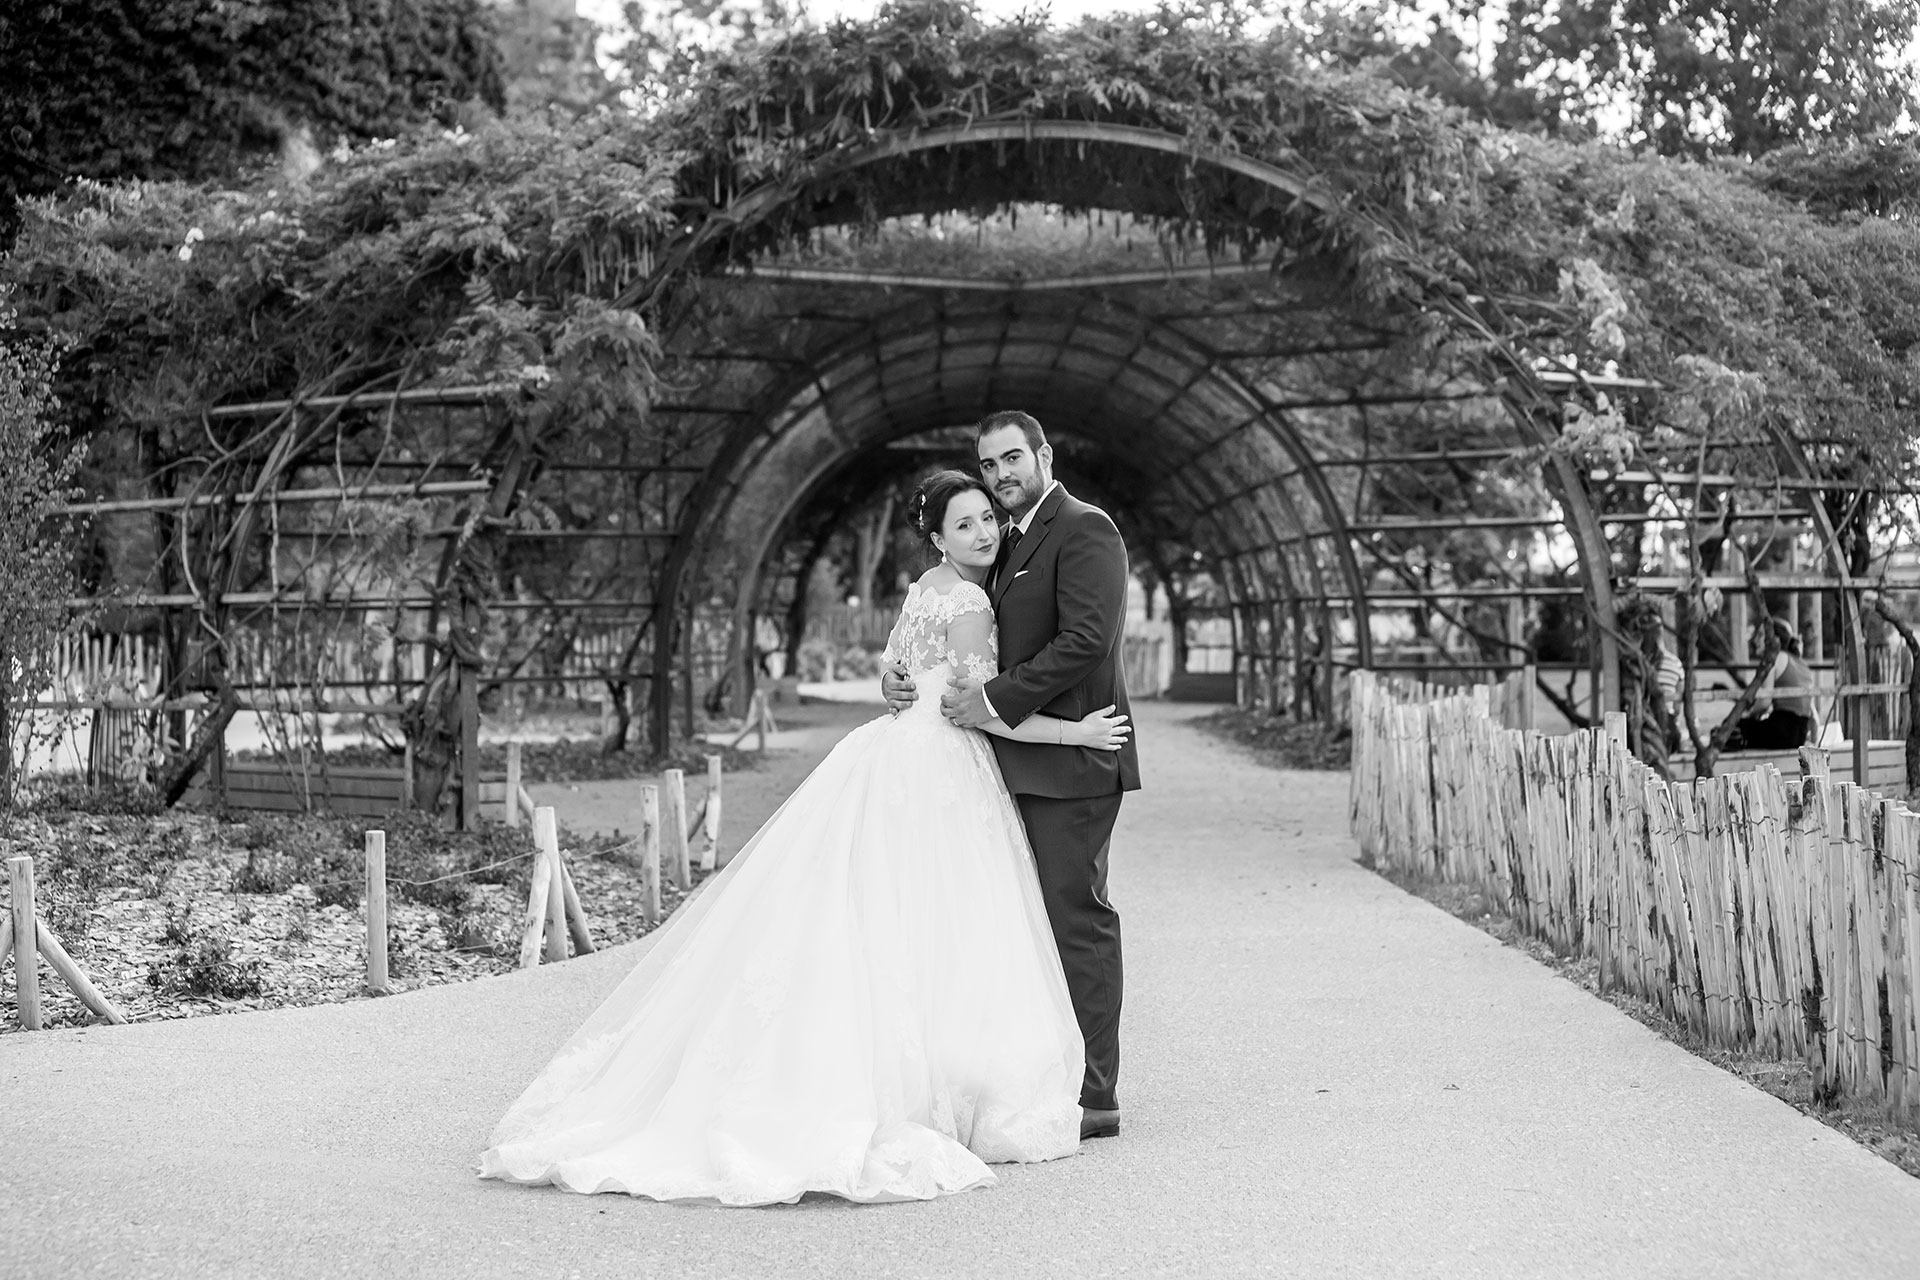 particuliers-evenements-mariage-oui-tiphaine&rudy-76